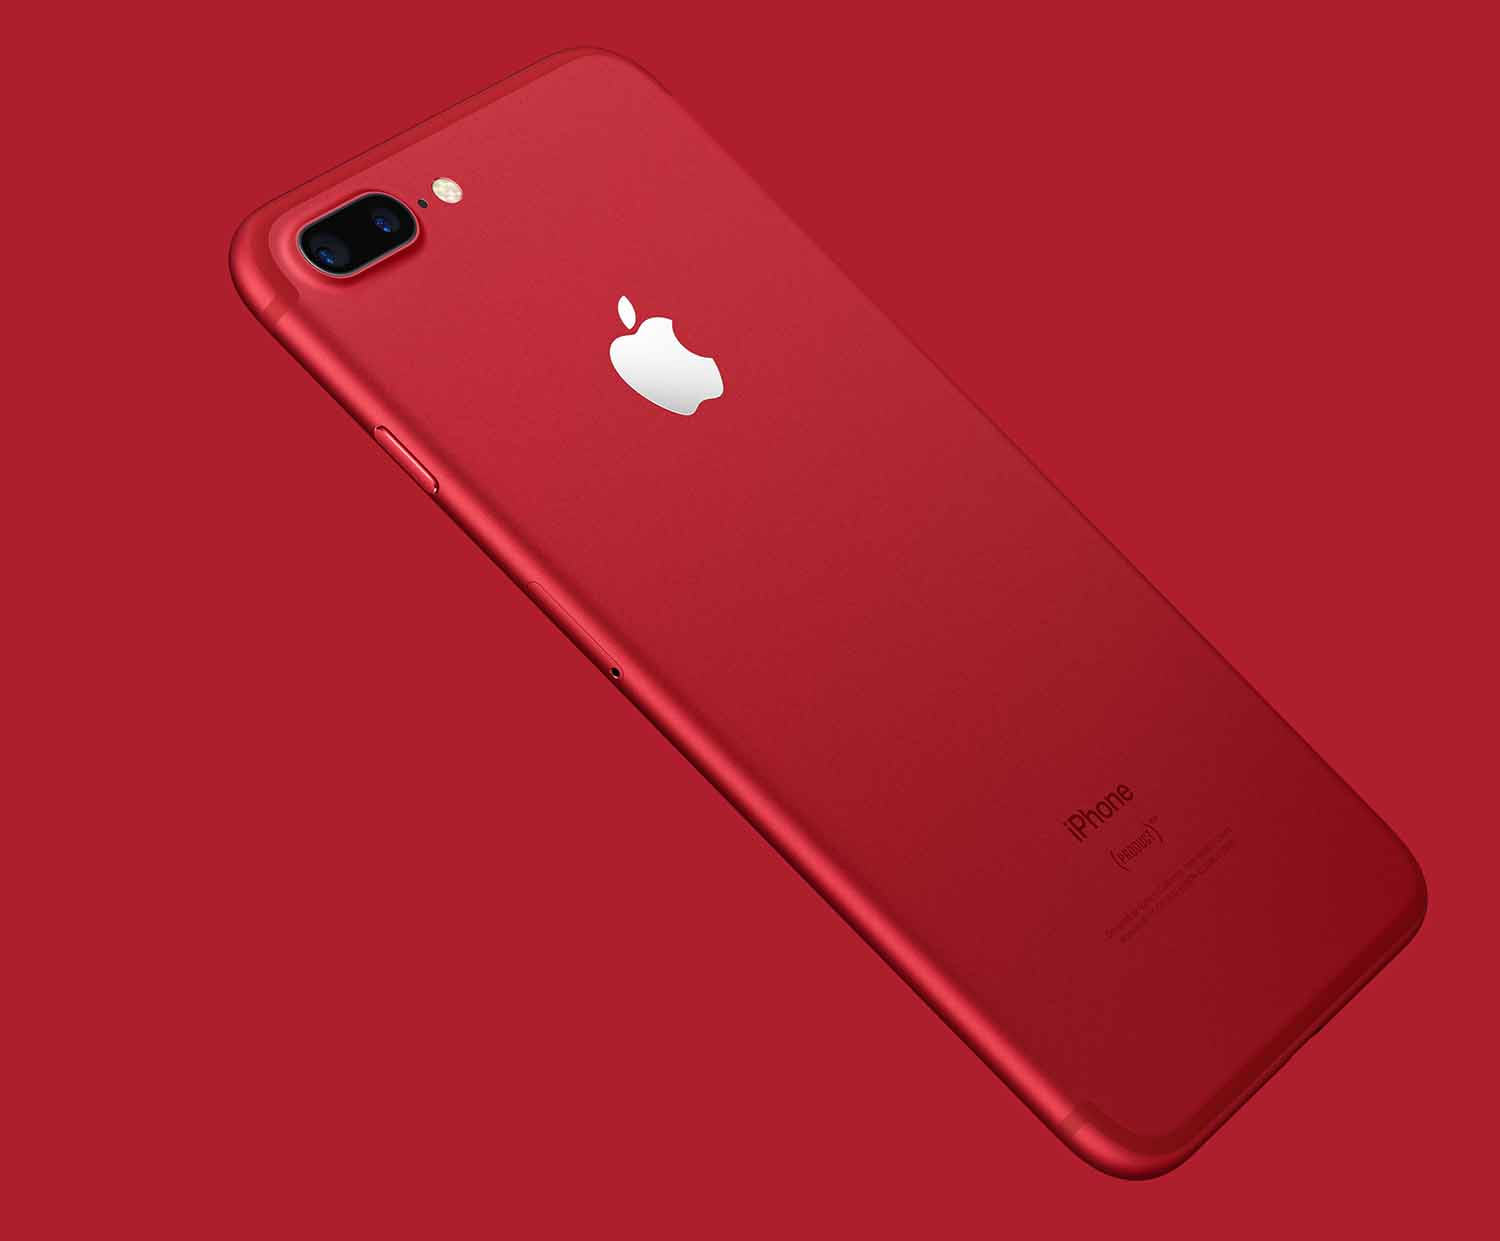 apple iphone 7 plus 128 gb product red. Black Bedroom Furniture Sets. Home Design Ideas